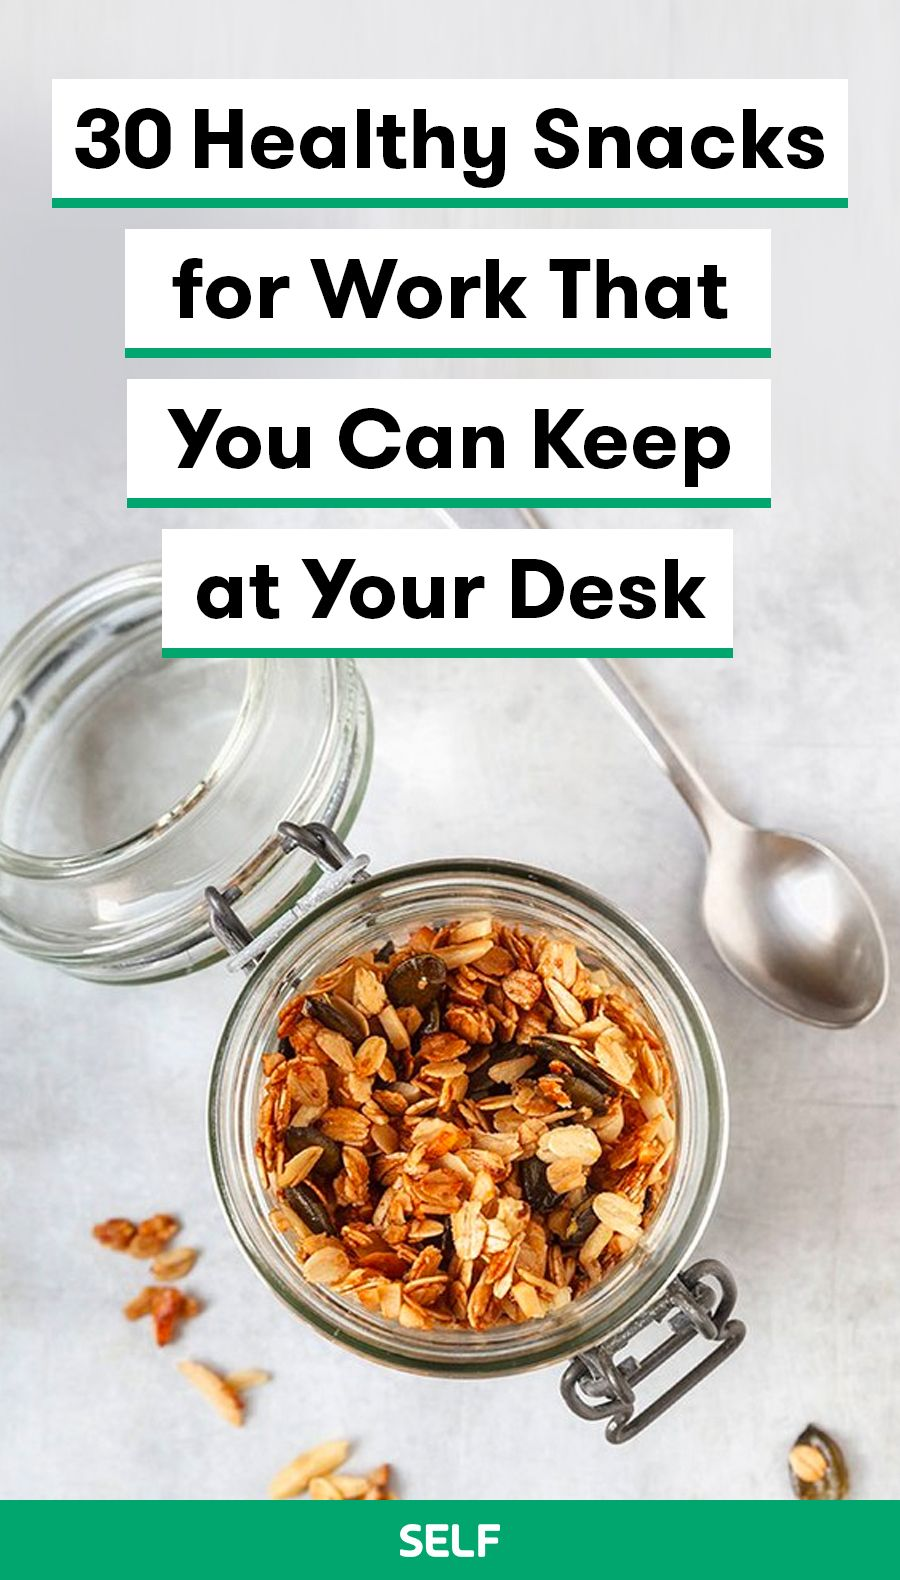 30 Healthy Snacks for Work That You Can Keep at Your Desk images